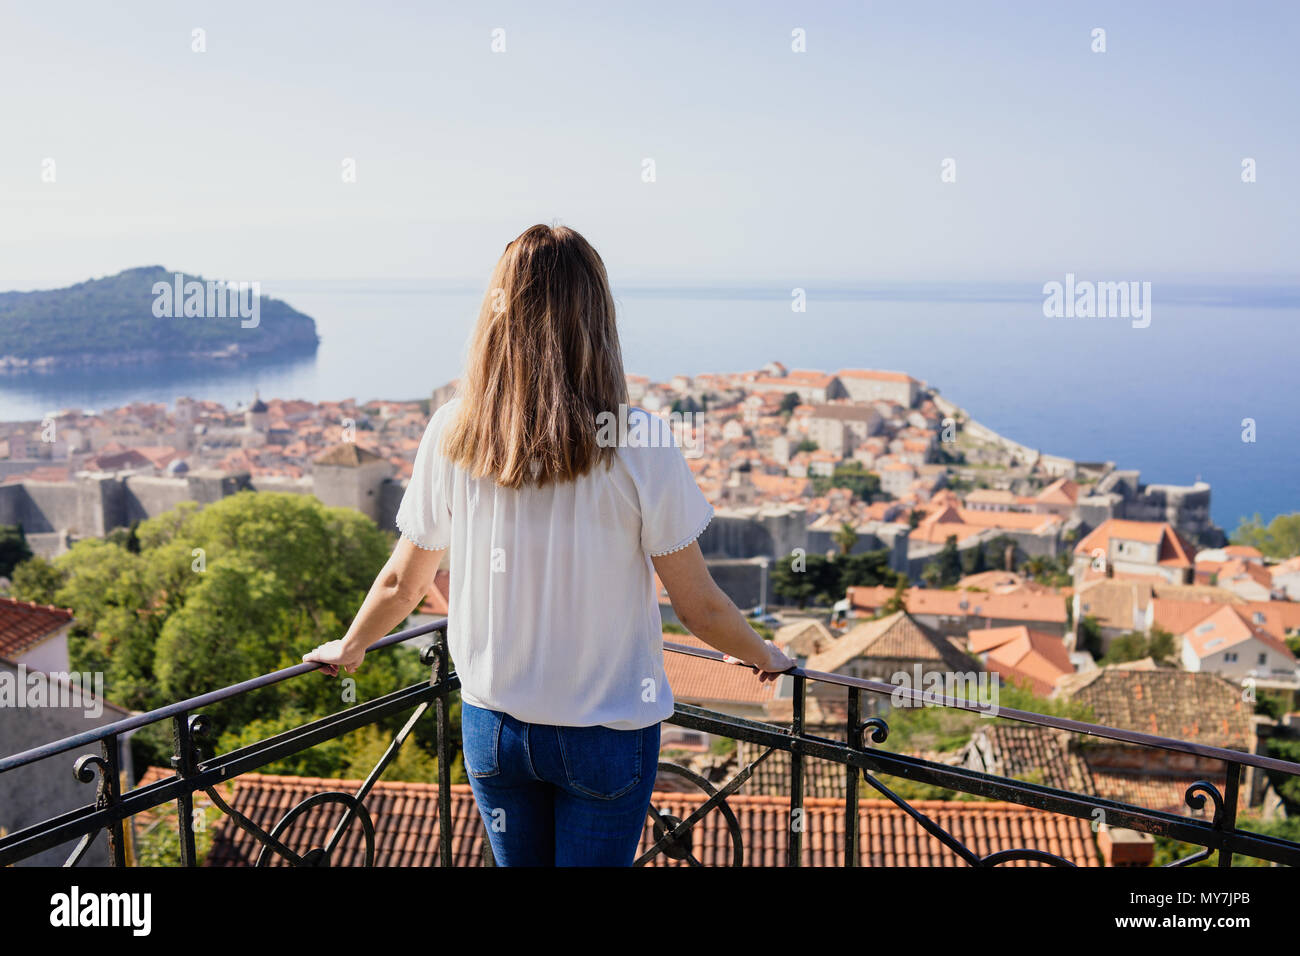 Woman looking at Dubrovnik old town - Stock Image